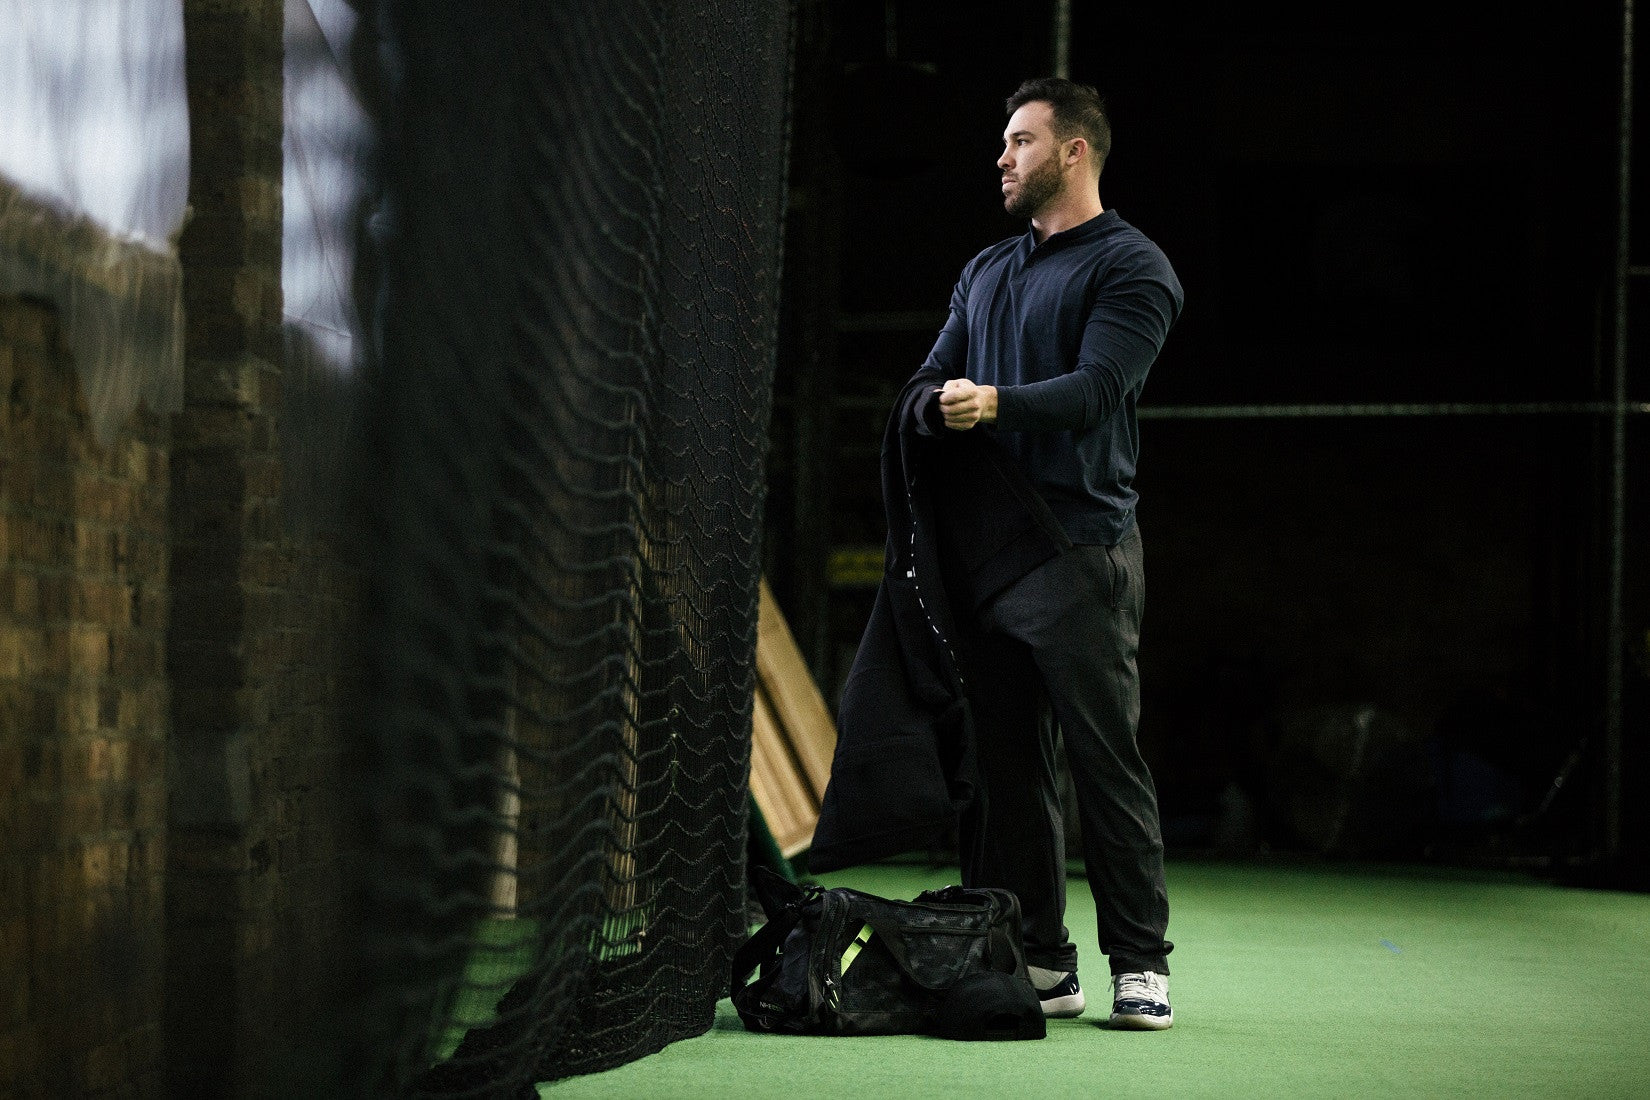 Jason Kipnis - The Man in the Arena - Photo 3